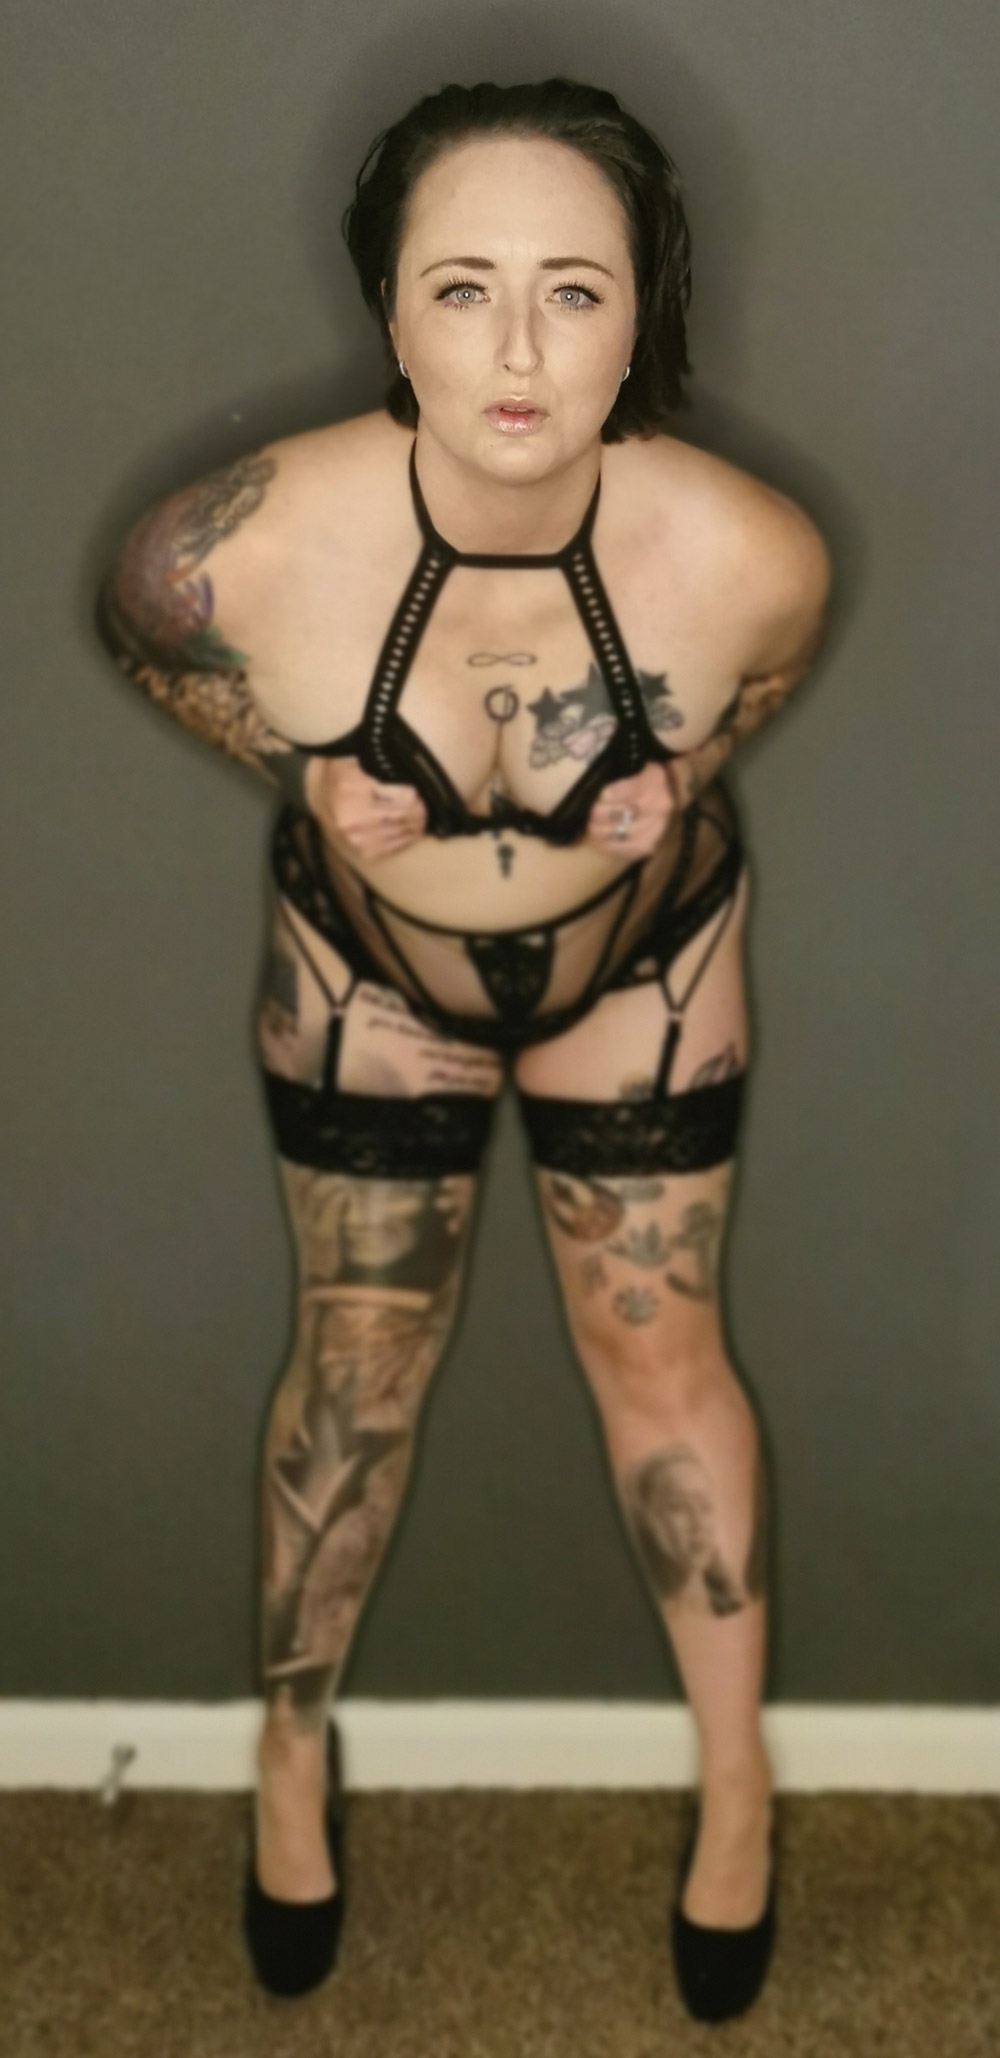 inked-leah-tattooed-alt-model-fat-punk-studio-10